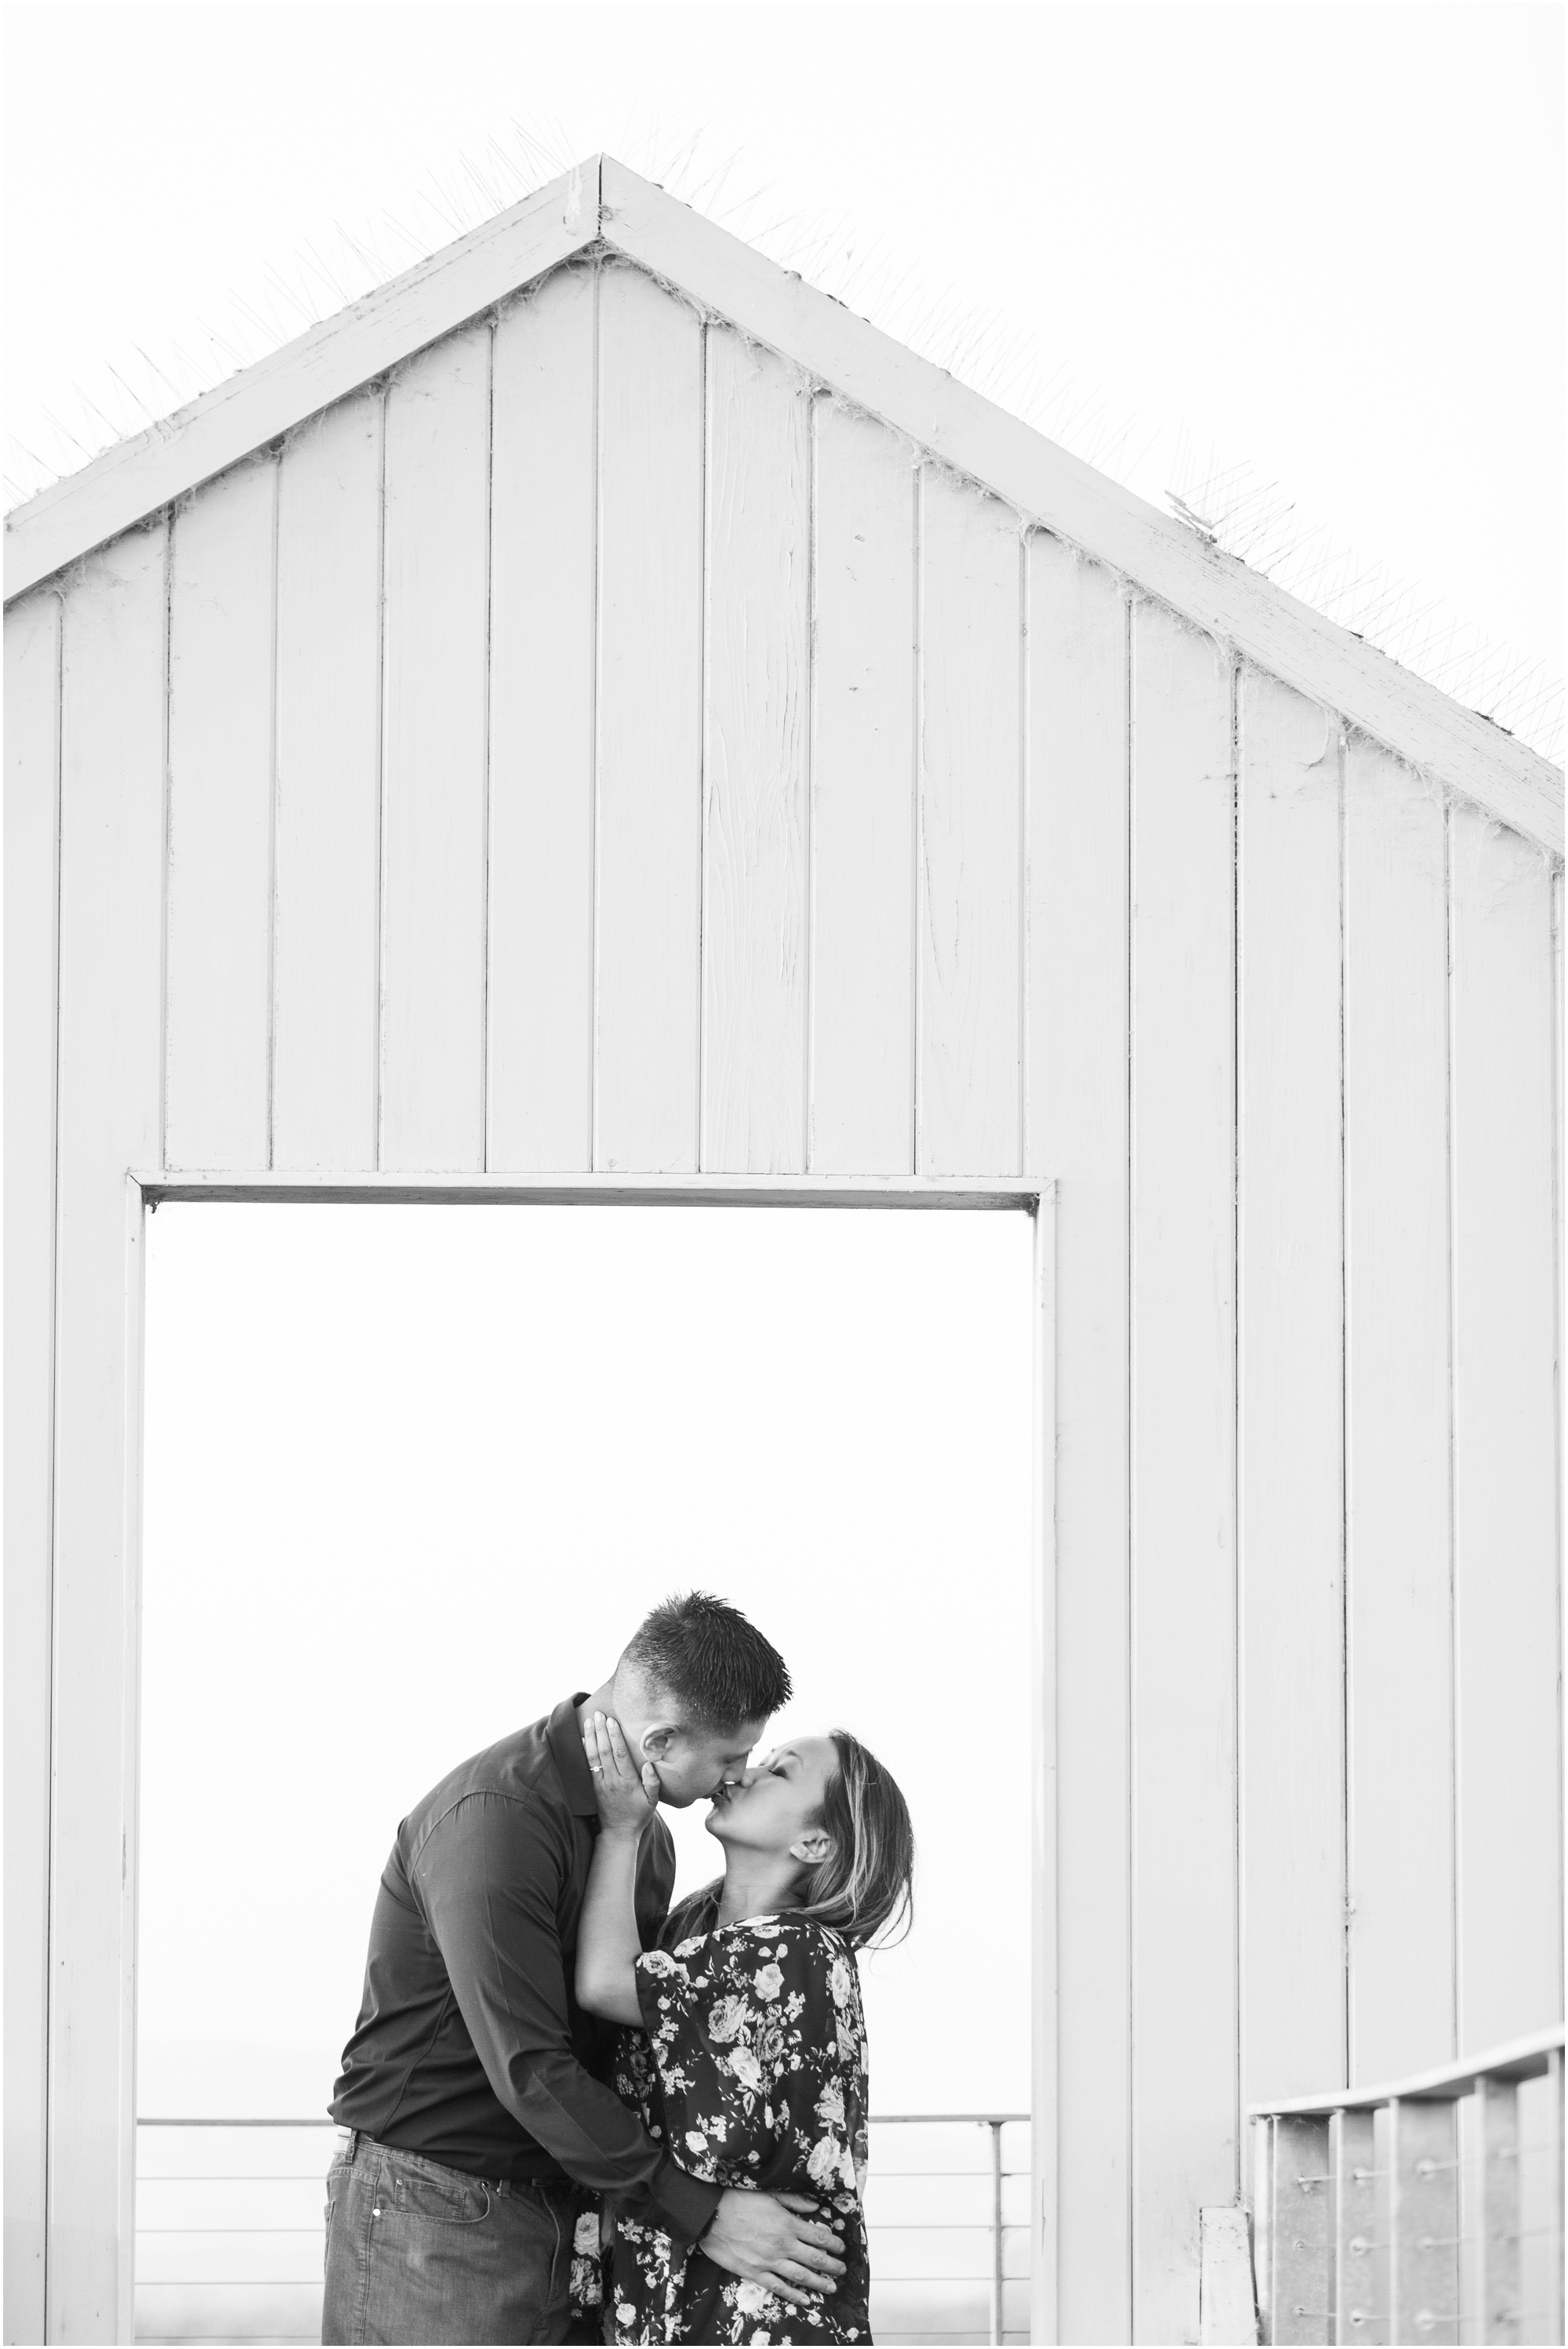 Willow Glan & Alviso Marina engagement pictures by Briana Calderon Photography_2123.jpg